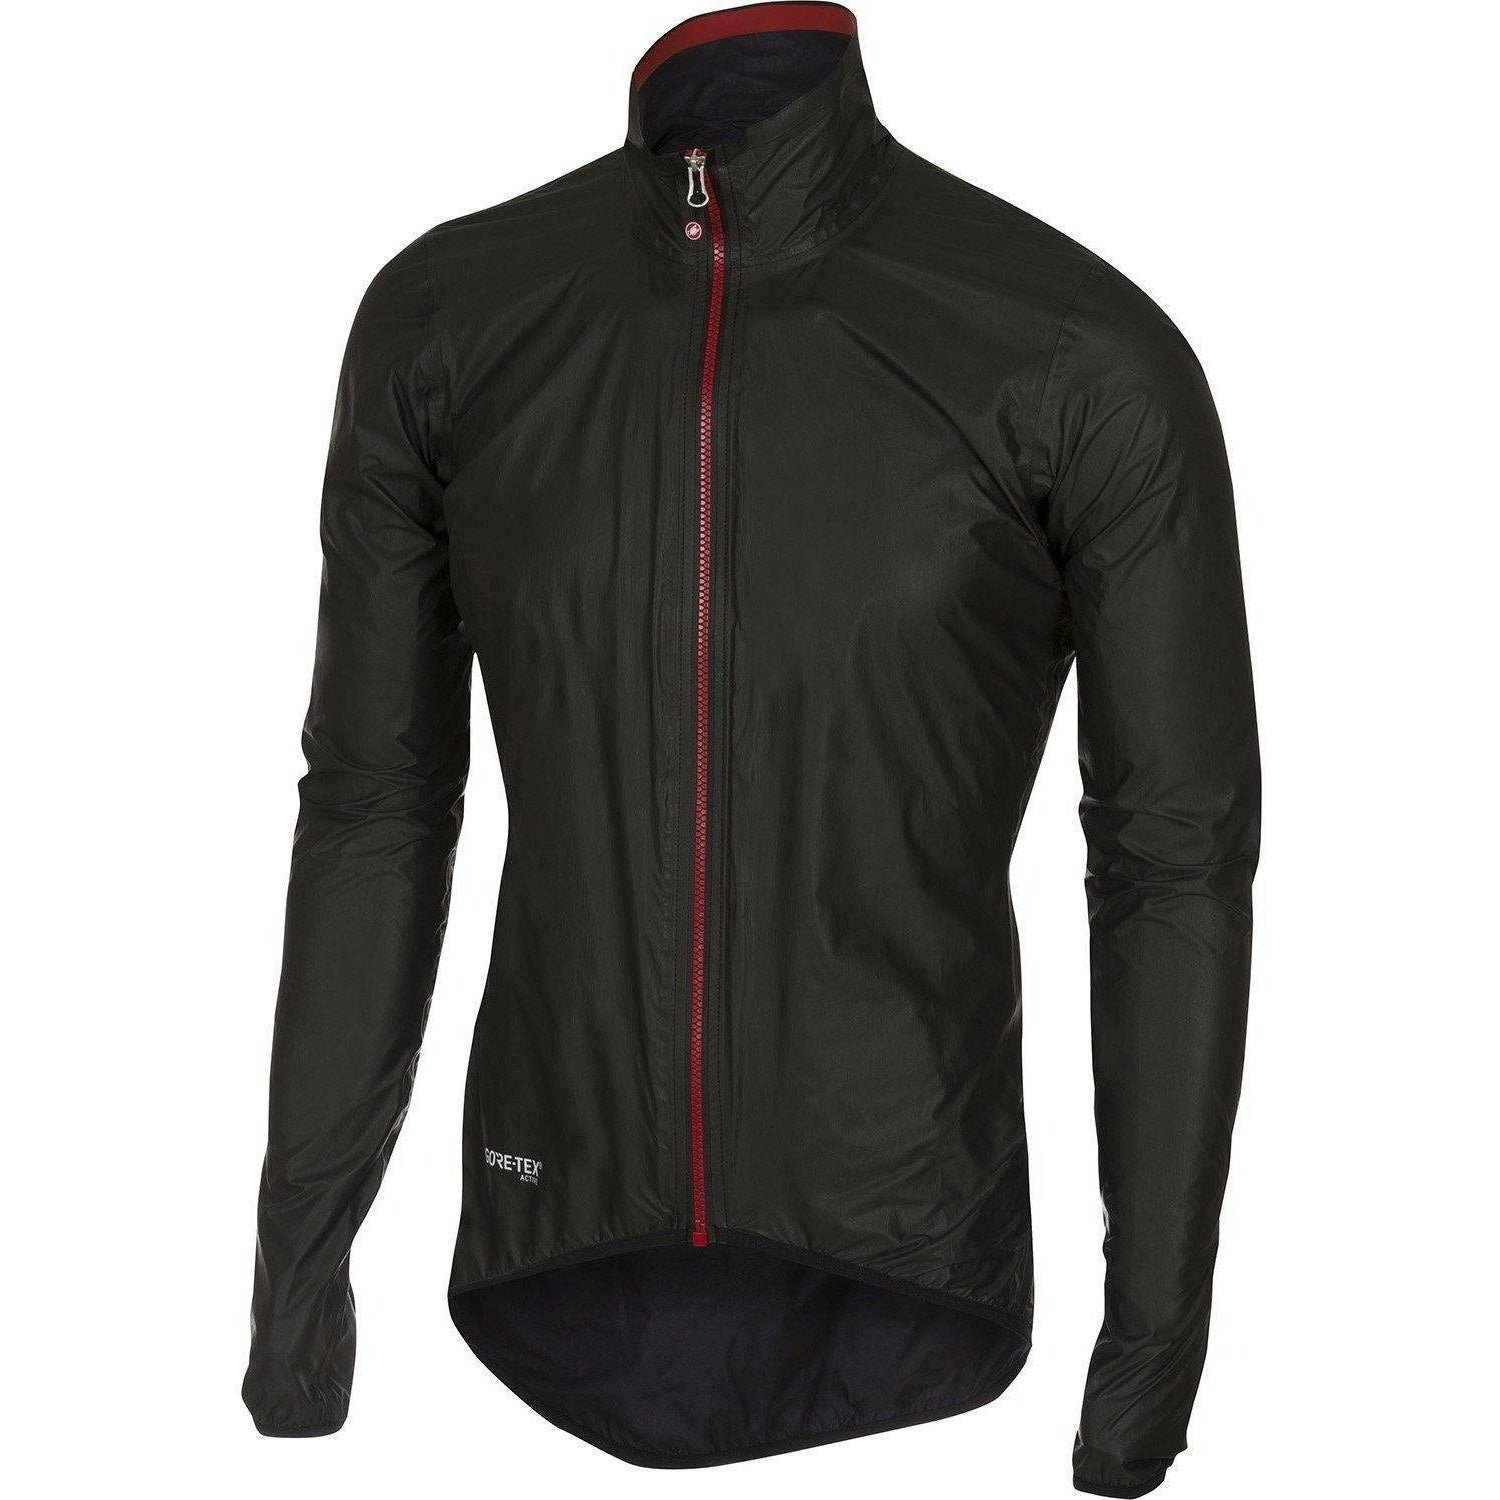 Jackets - Castelli Idro 2 Waterproof Jacket